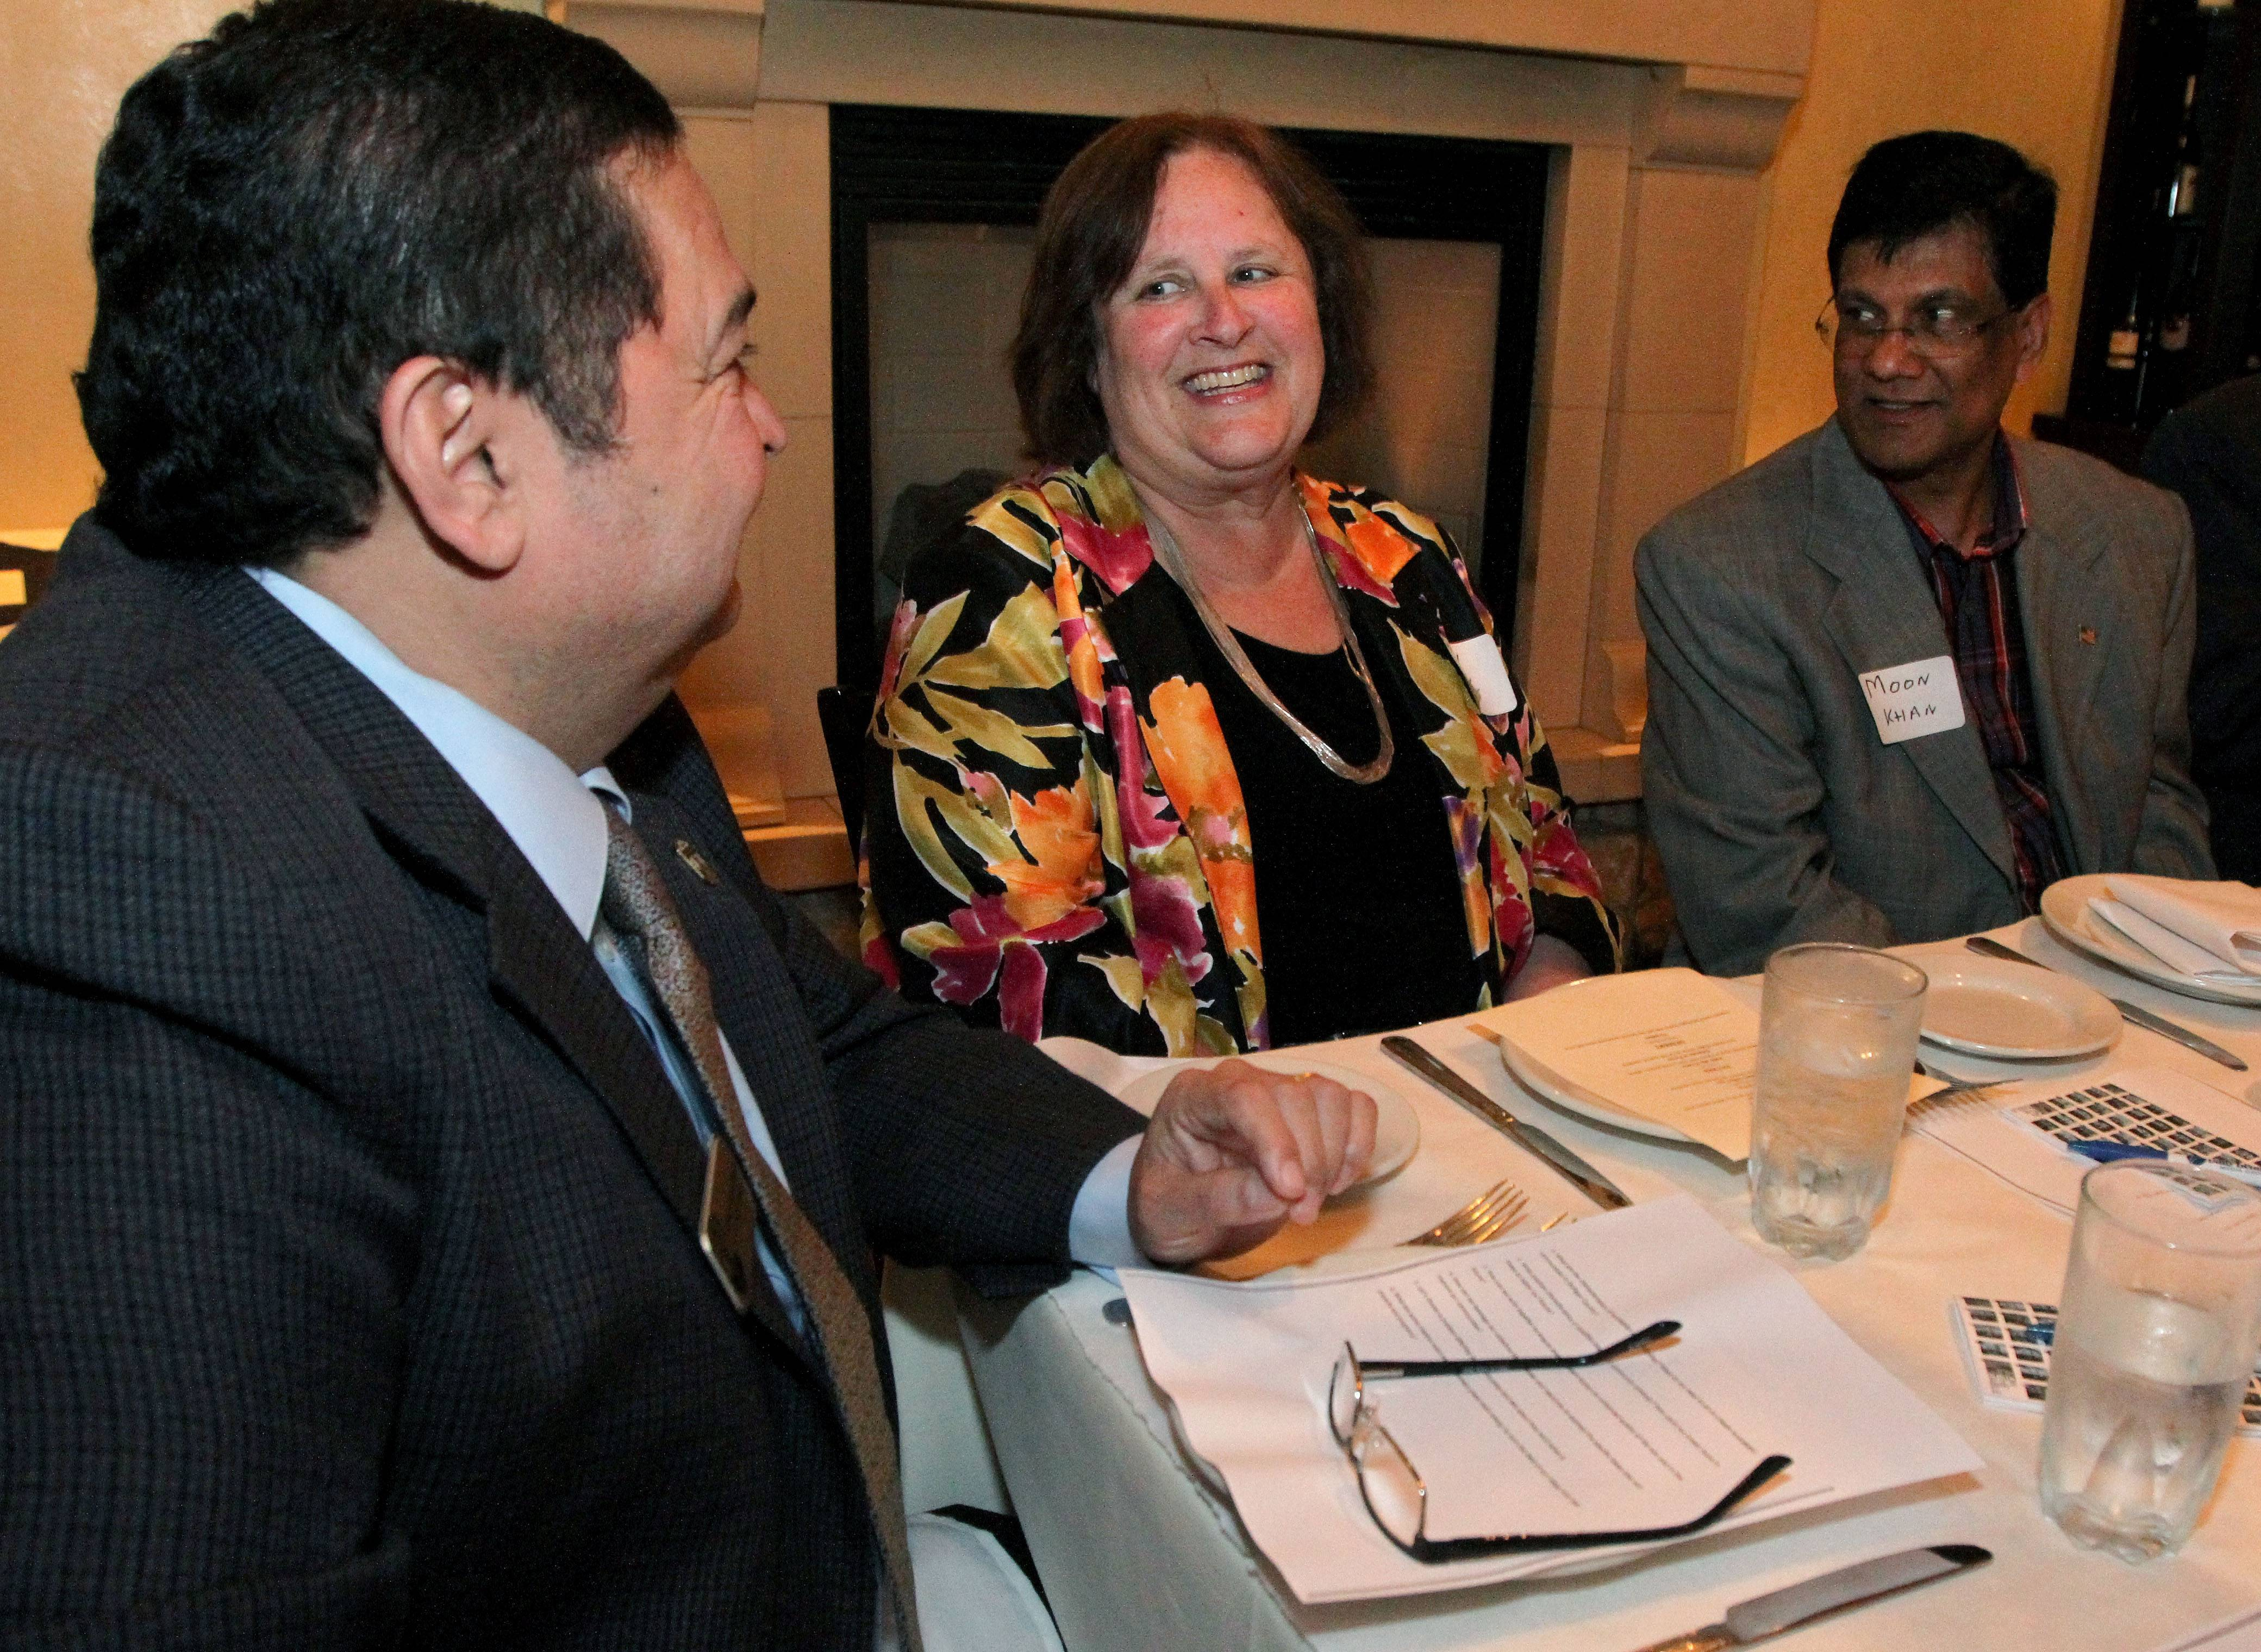 West Chicago Mayor Ruben Pineda, Naperville resident Peggy Frank and Lombard resident Moon Khan, president of Asian American Caucus of DuPage, discuss collaboration and ways to improve their communities Monday during an On the Table discussion hosted by Daily Herald Media Group Monday in Downers Grove/